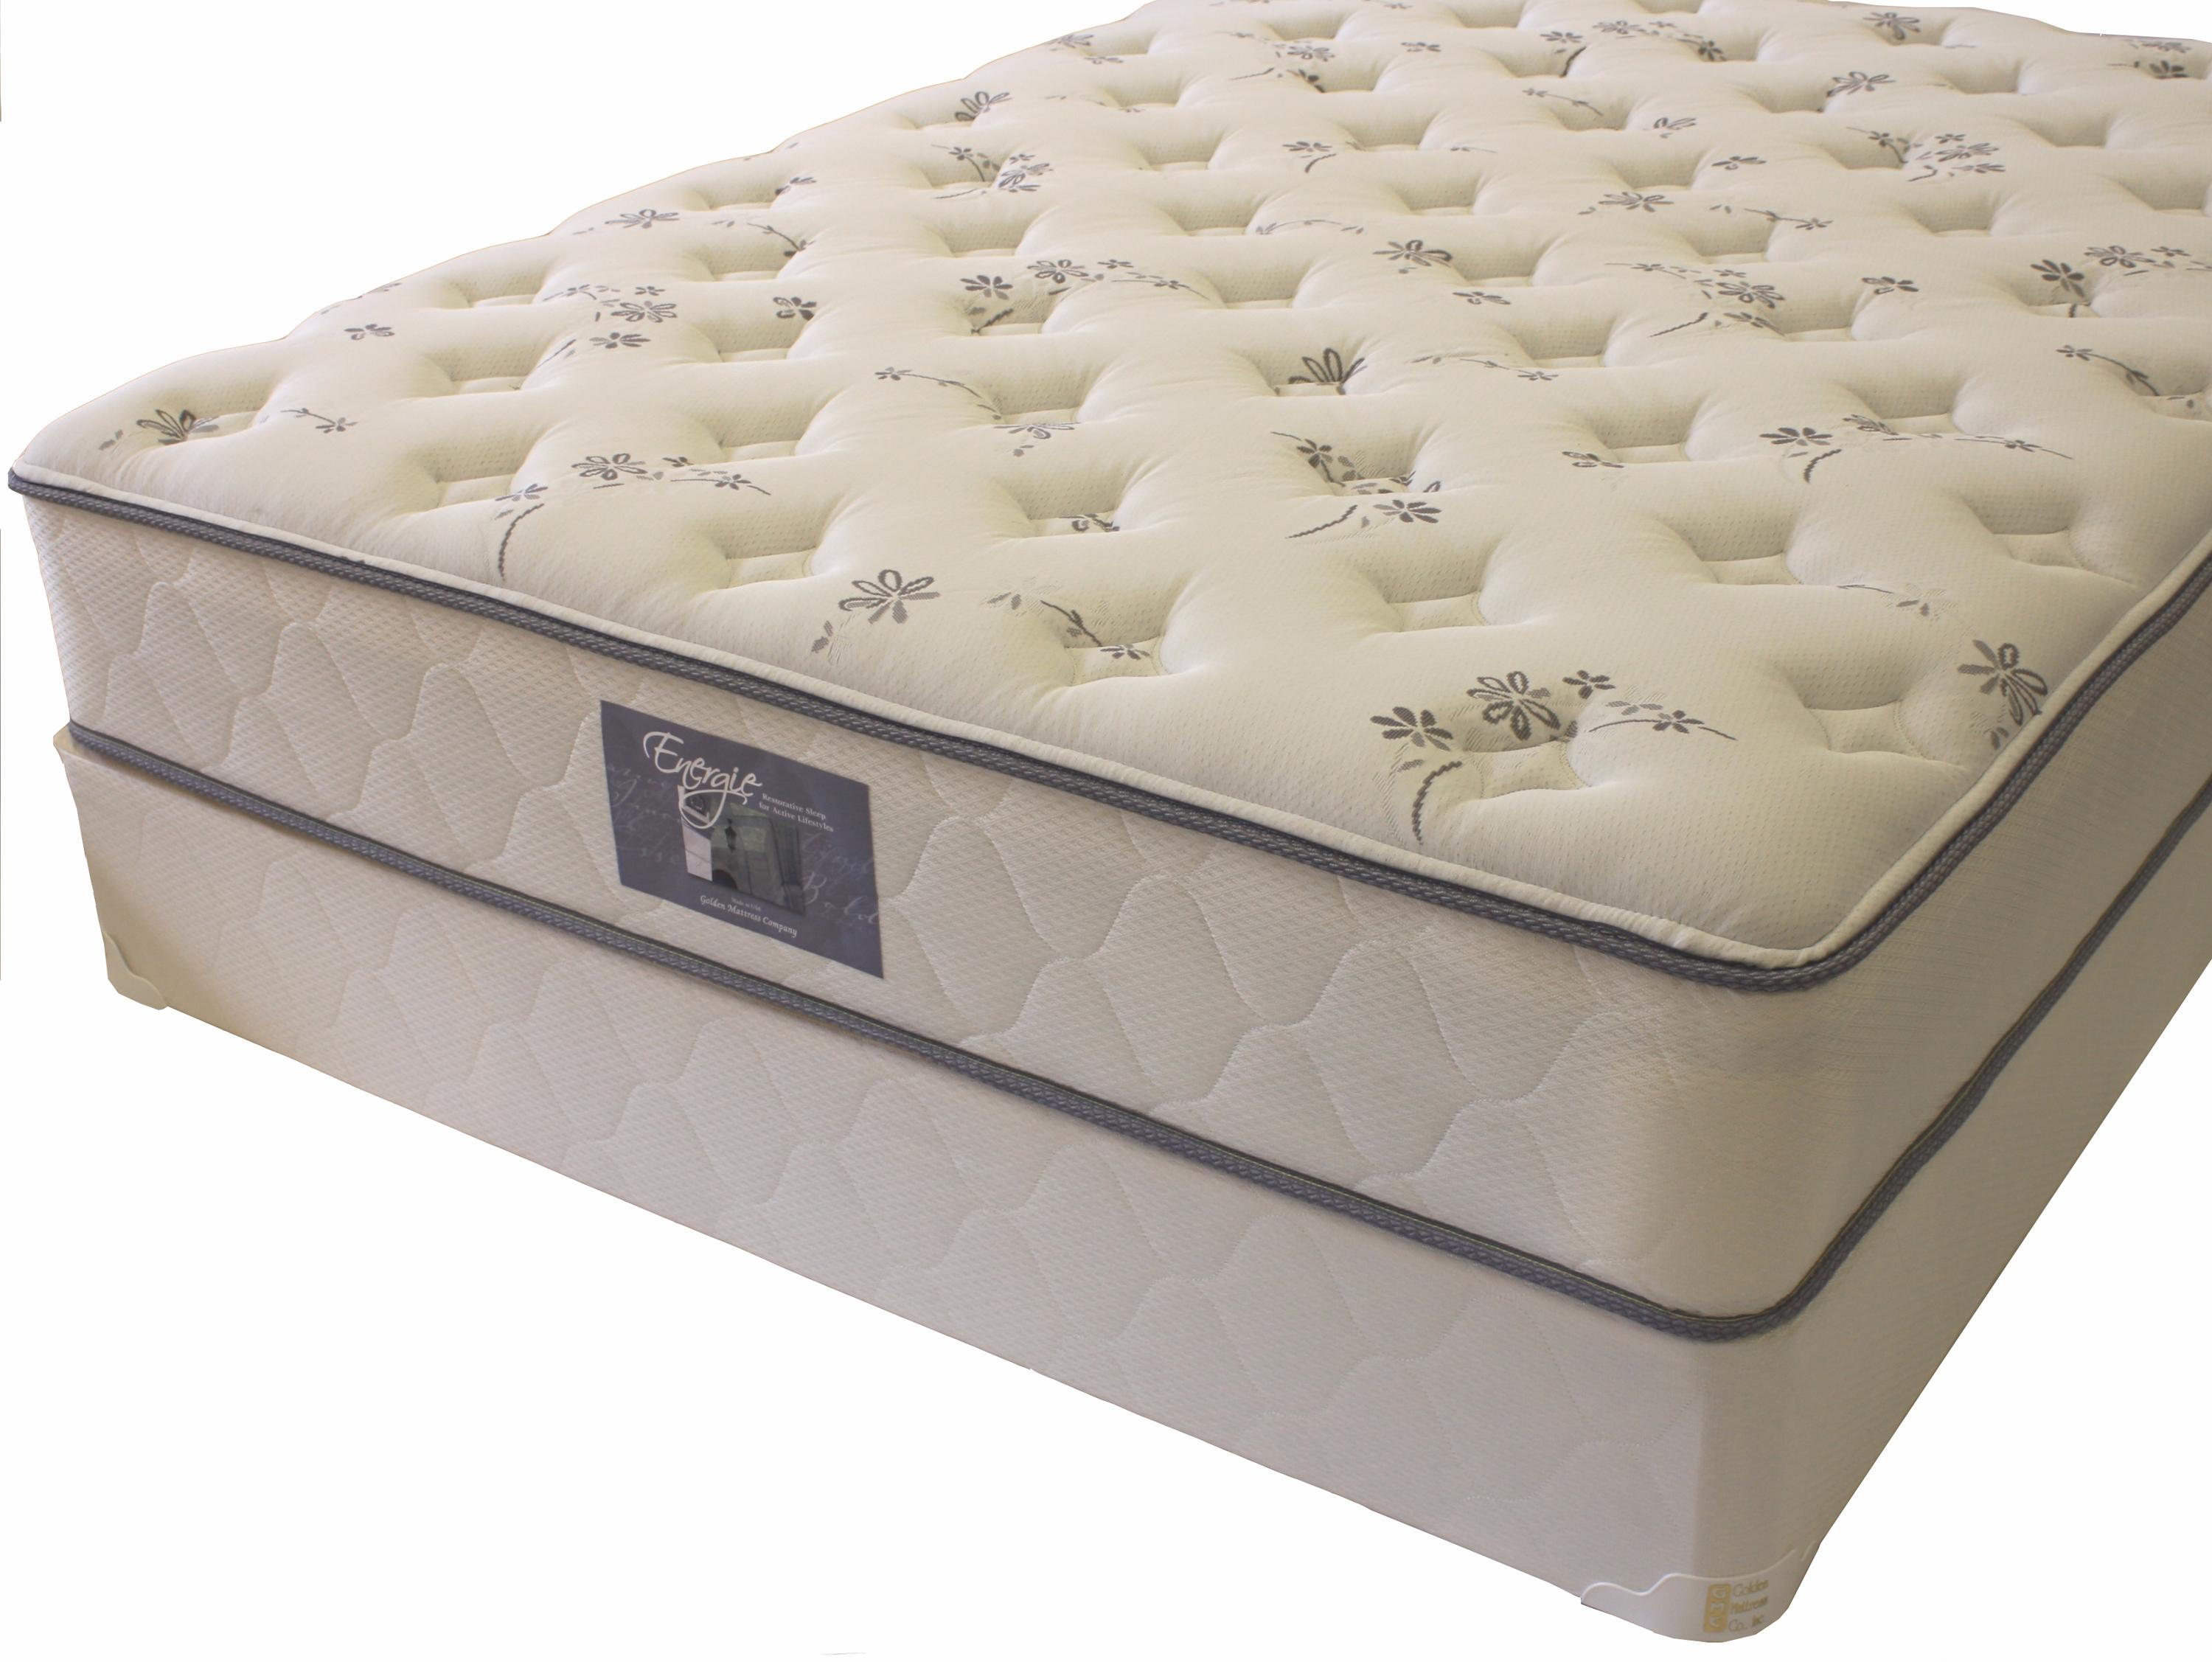 upholstered with bed carving furniture panels and fine shell cambridge king collections mattress set bup item coaster